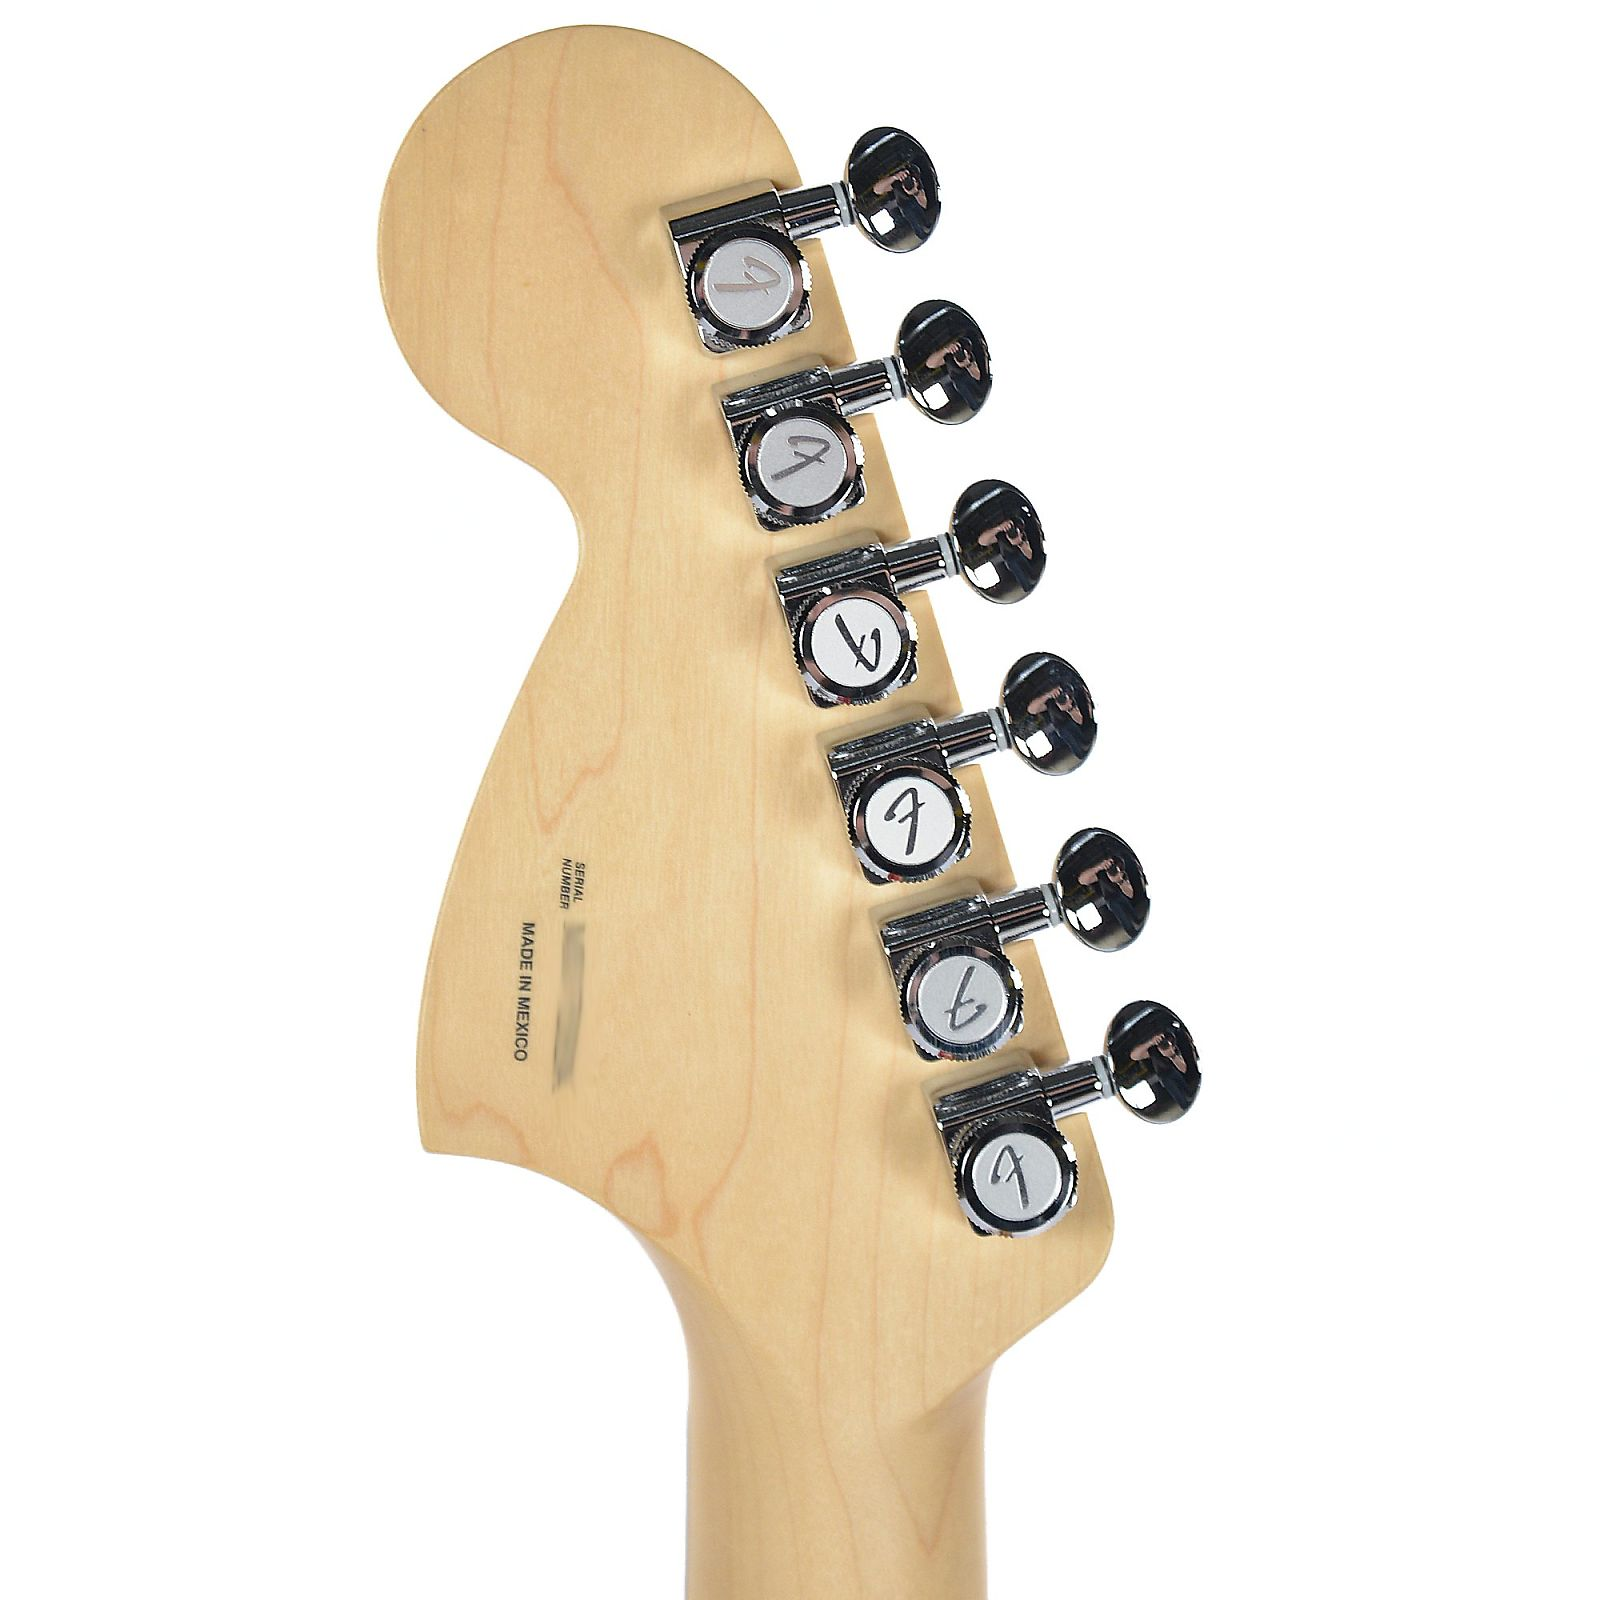 Fender Deluxe Stratocaster Hss Mexico Best 2018 Mexican Strat Wiring Diagram Sophisticated Wire Images Diagrams